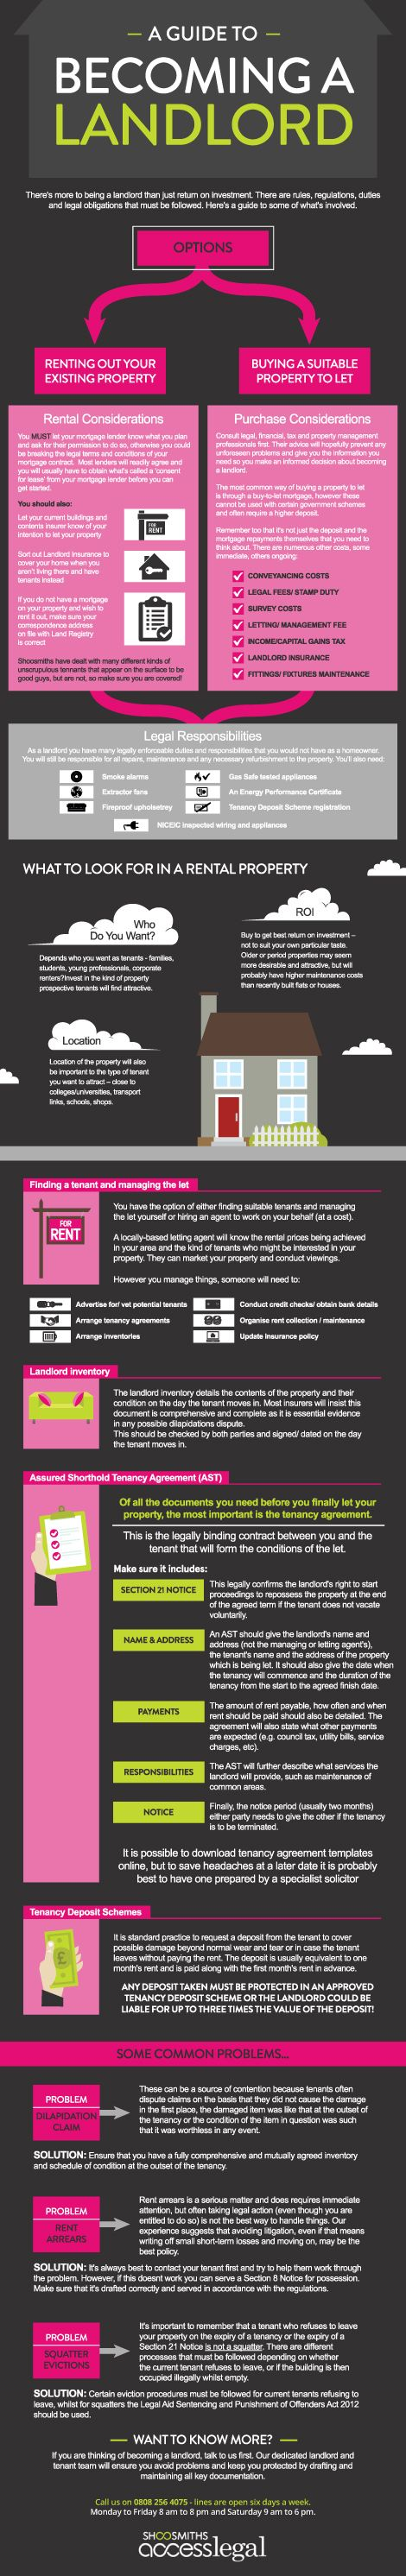 Real estate property... Infographic about how to become a landlord Jim Pellerin............................................................... Visit Now!  http://LandFind.net